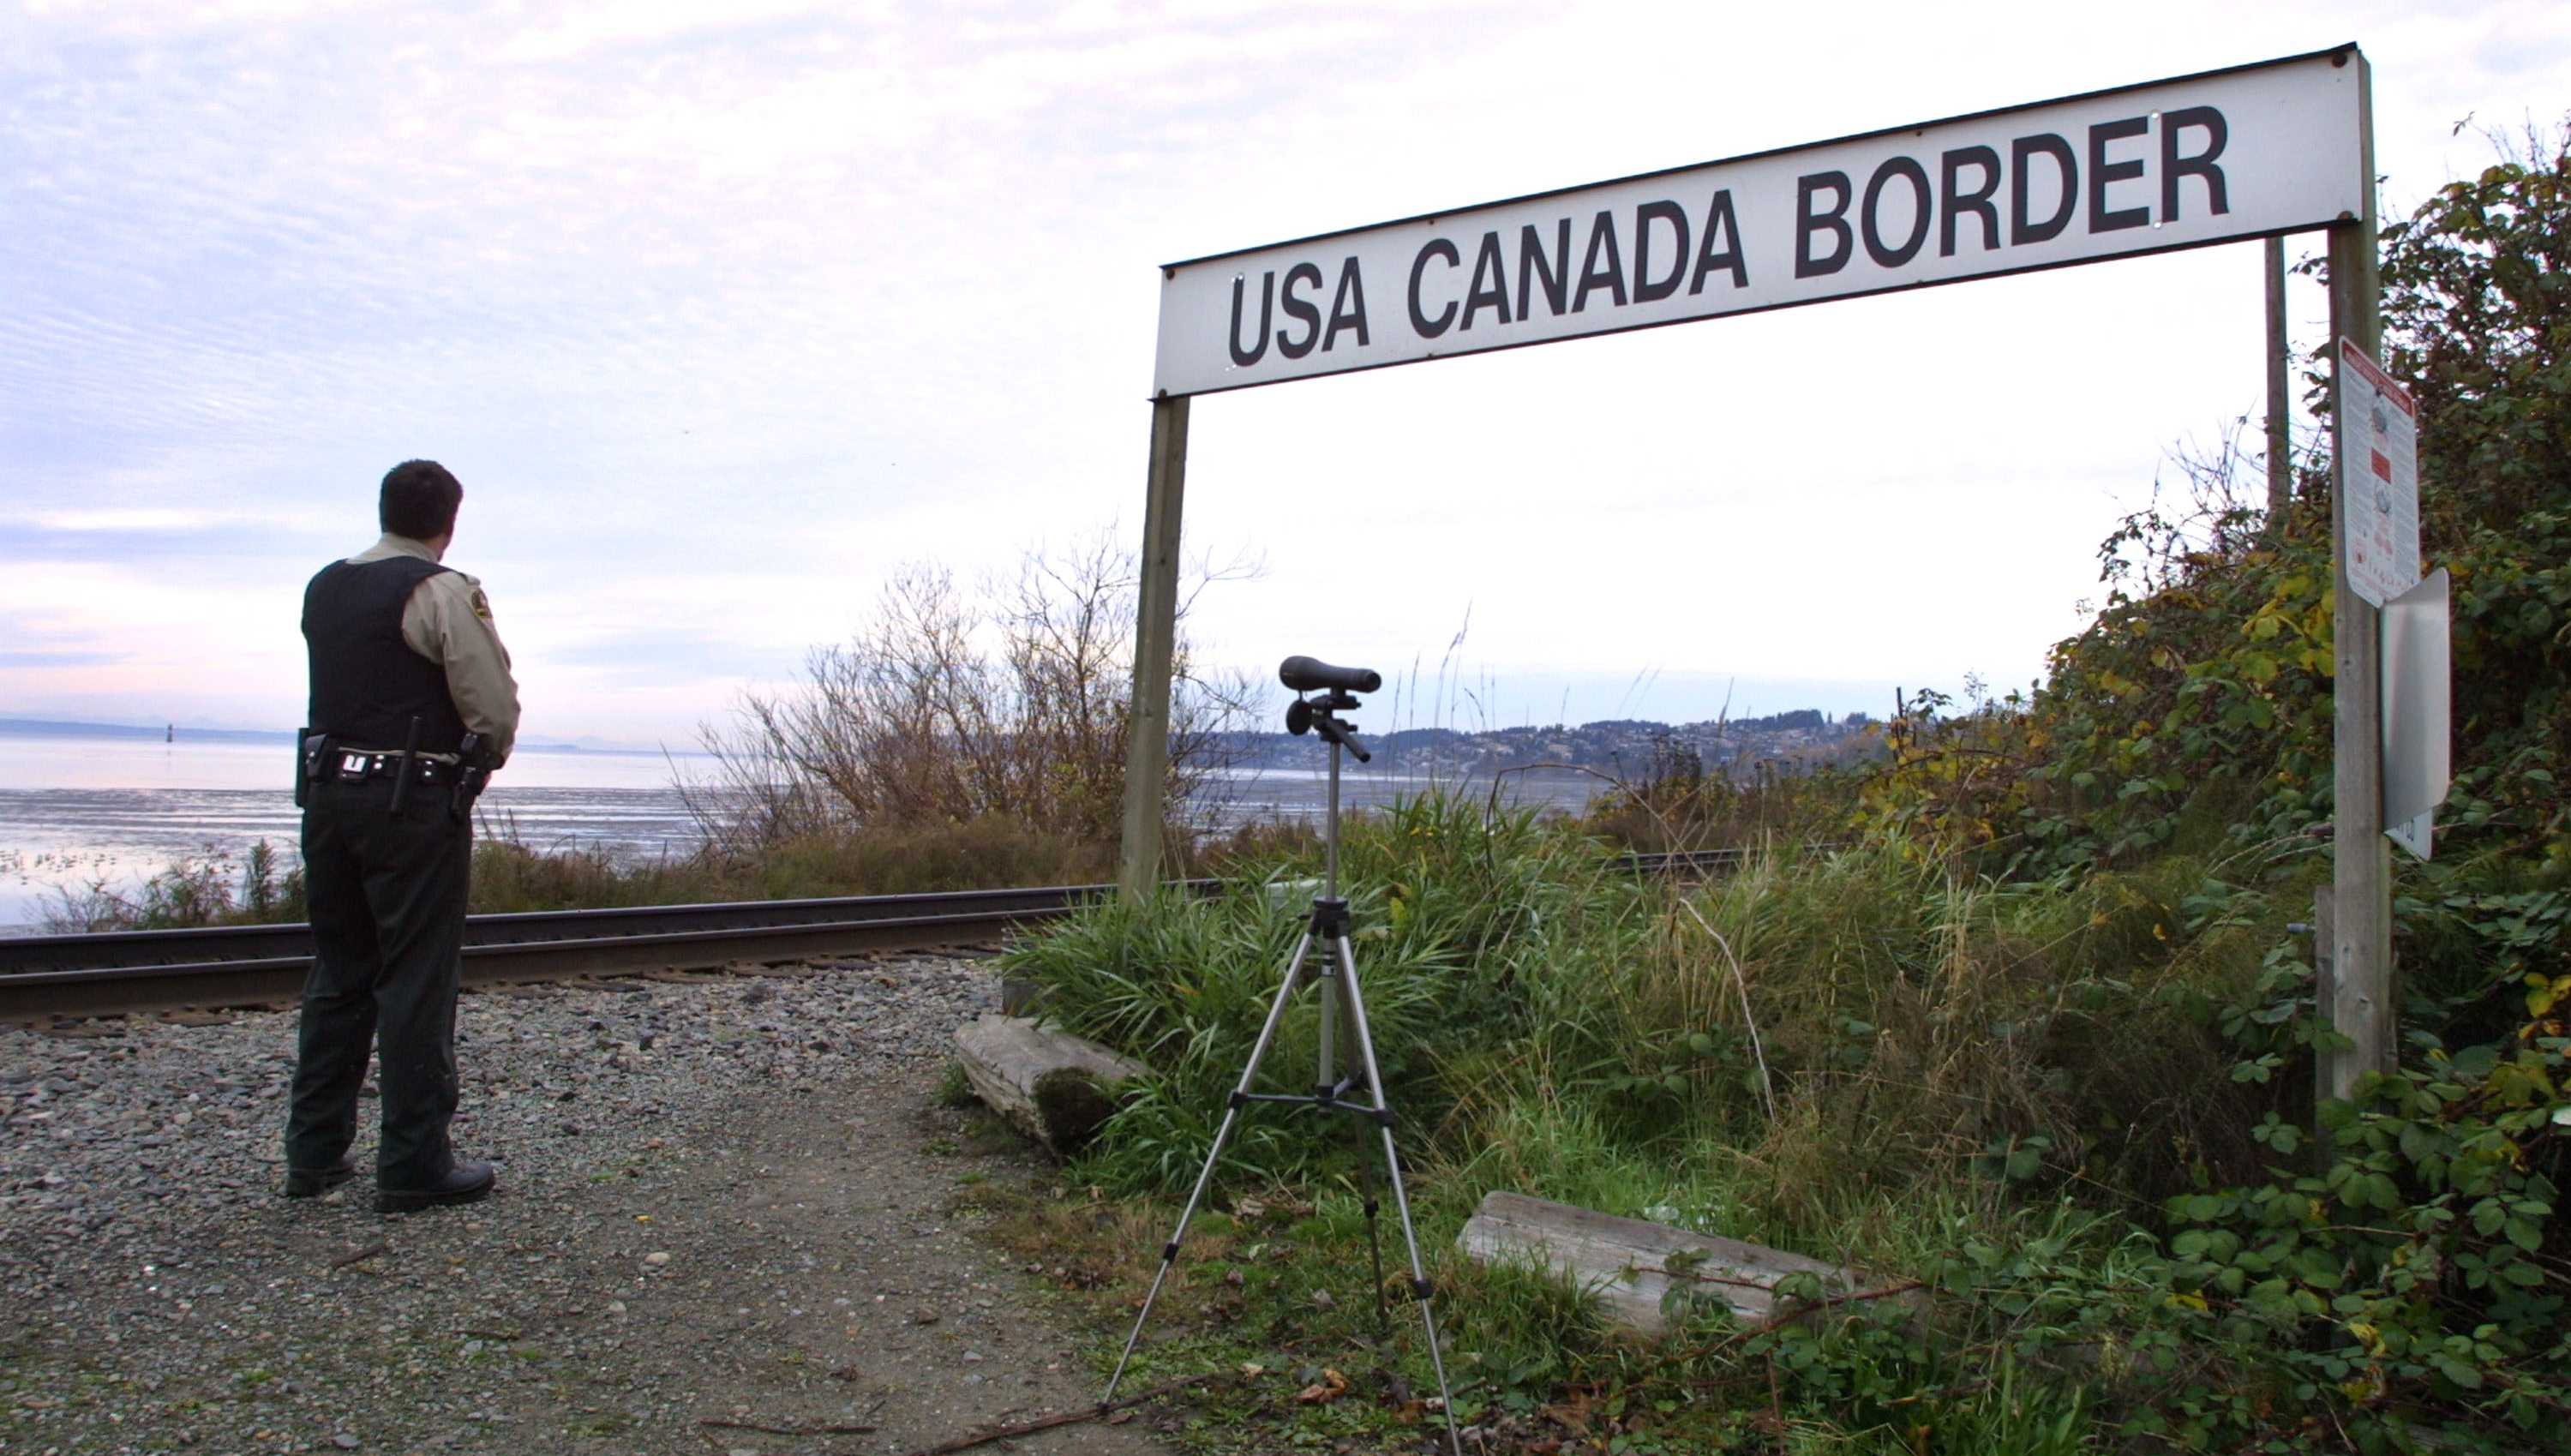 A Canadian Customs and Fisheries officer watches over the U.S.-Canada border between Blaine, Washington and White Rock, British Columbia, in White Rock, BC.